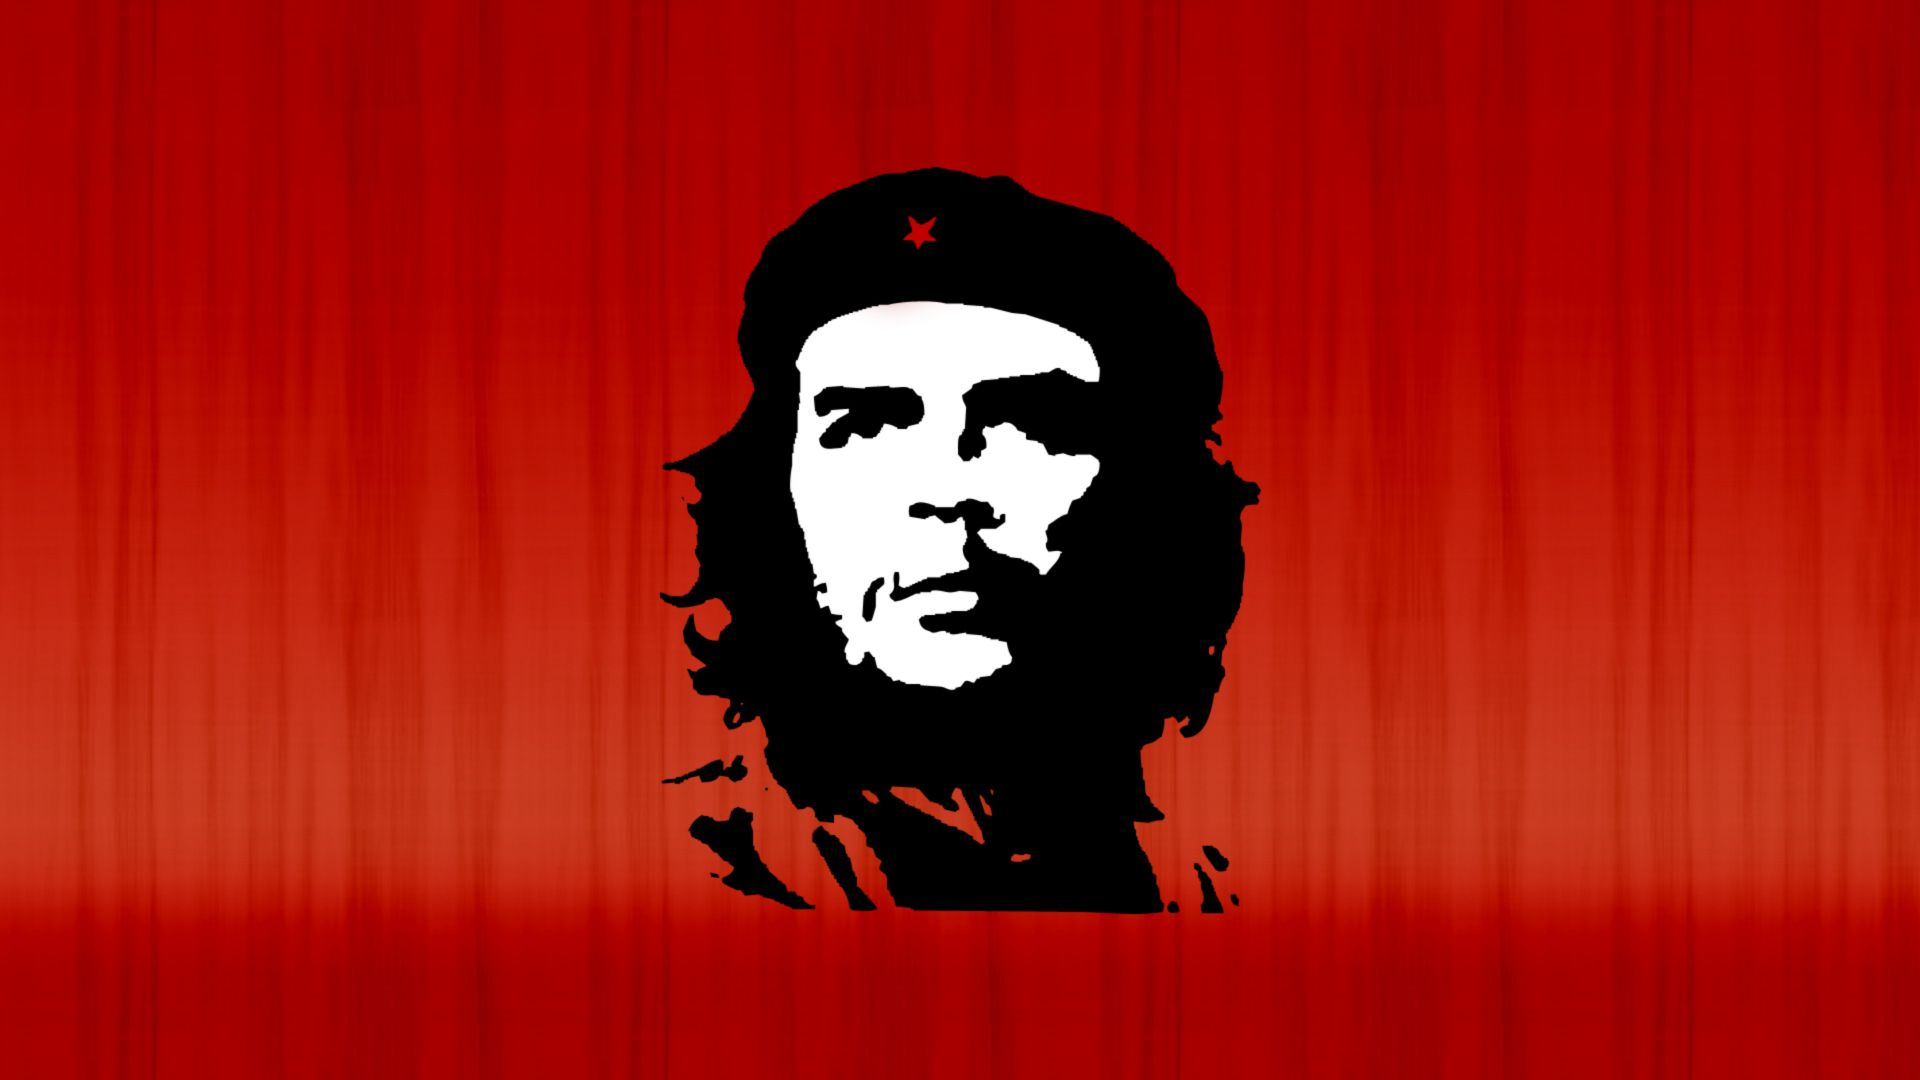 Che Guevara 1080p Background Picture Image 1920x1080